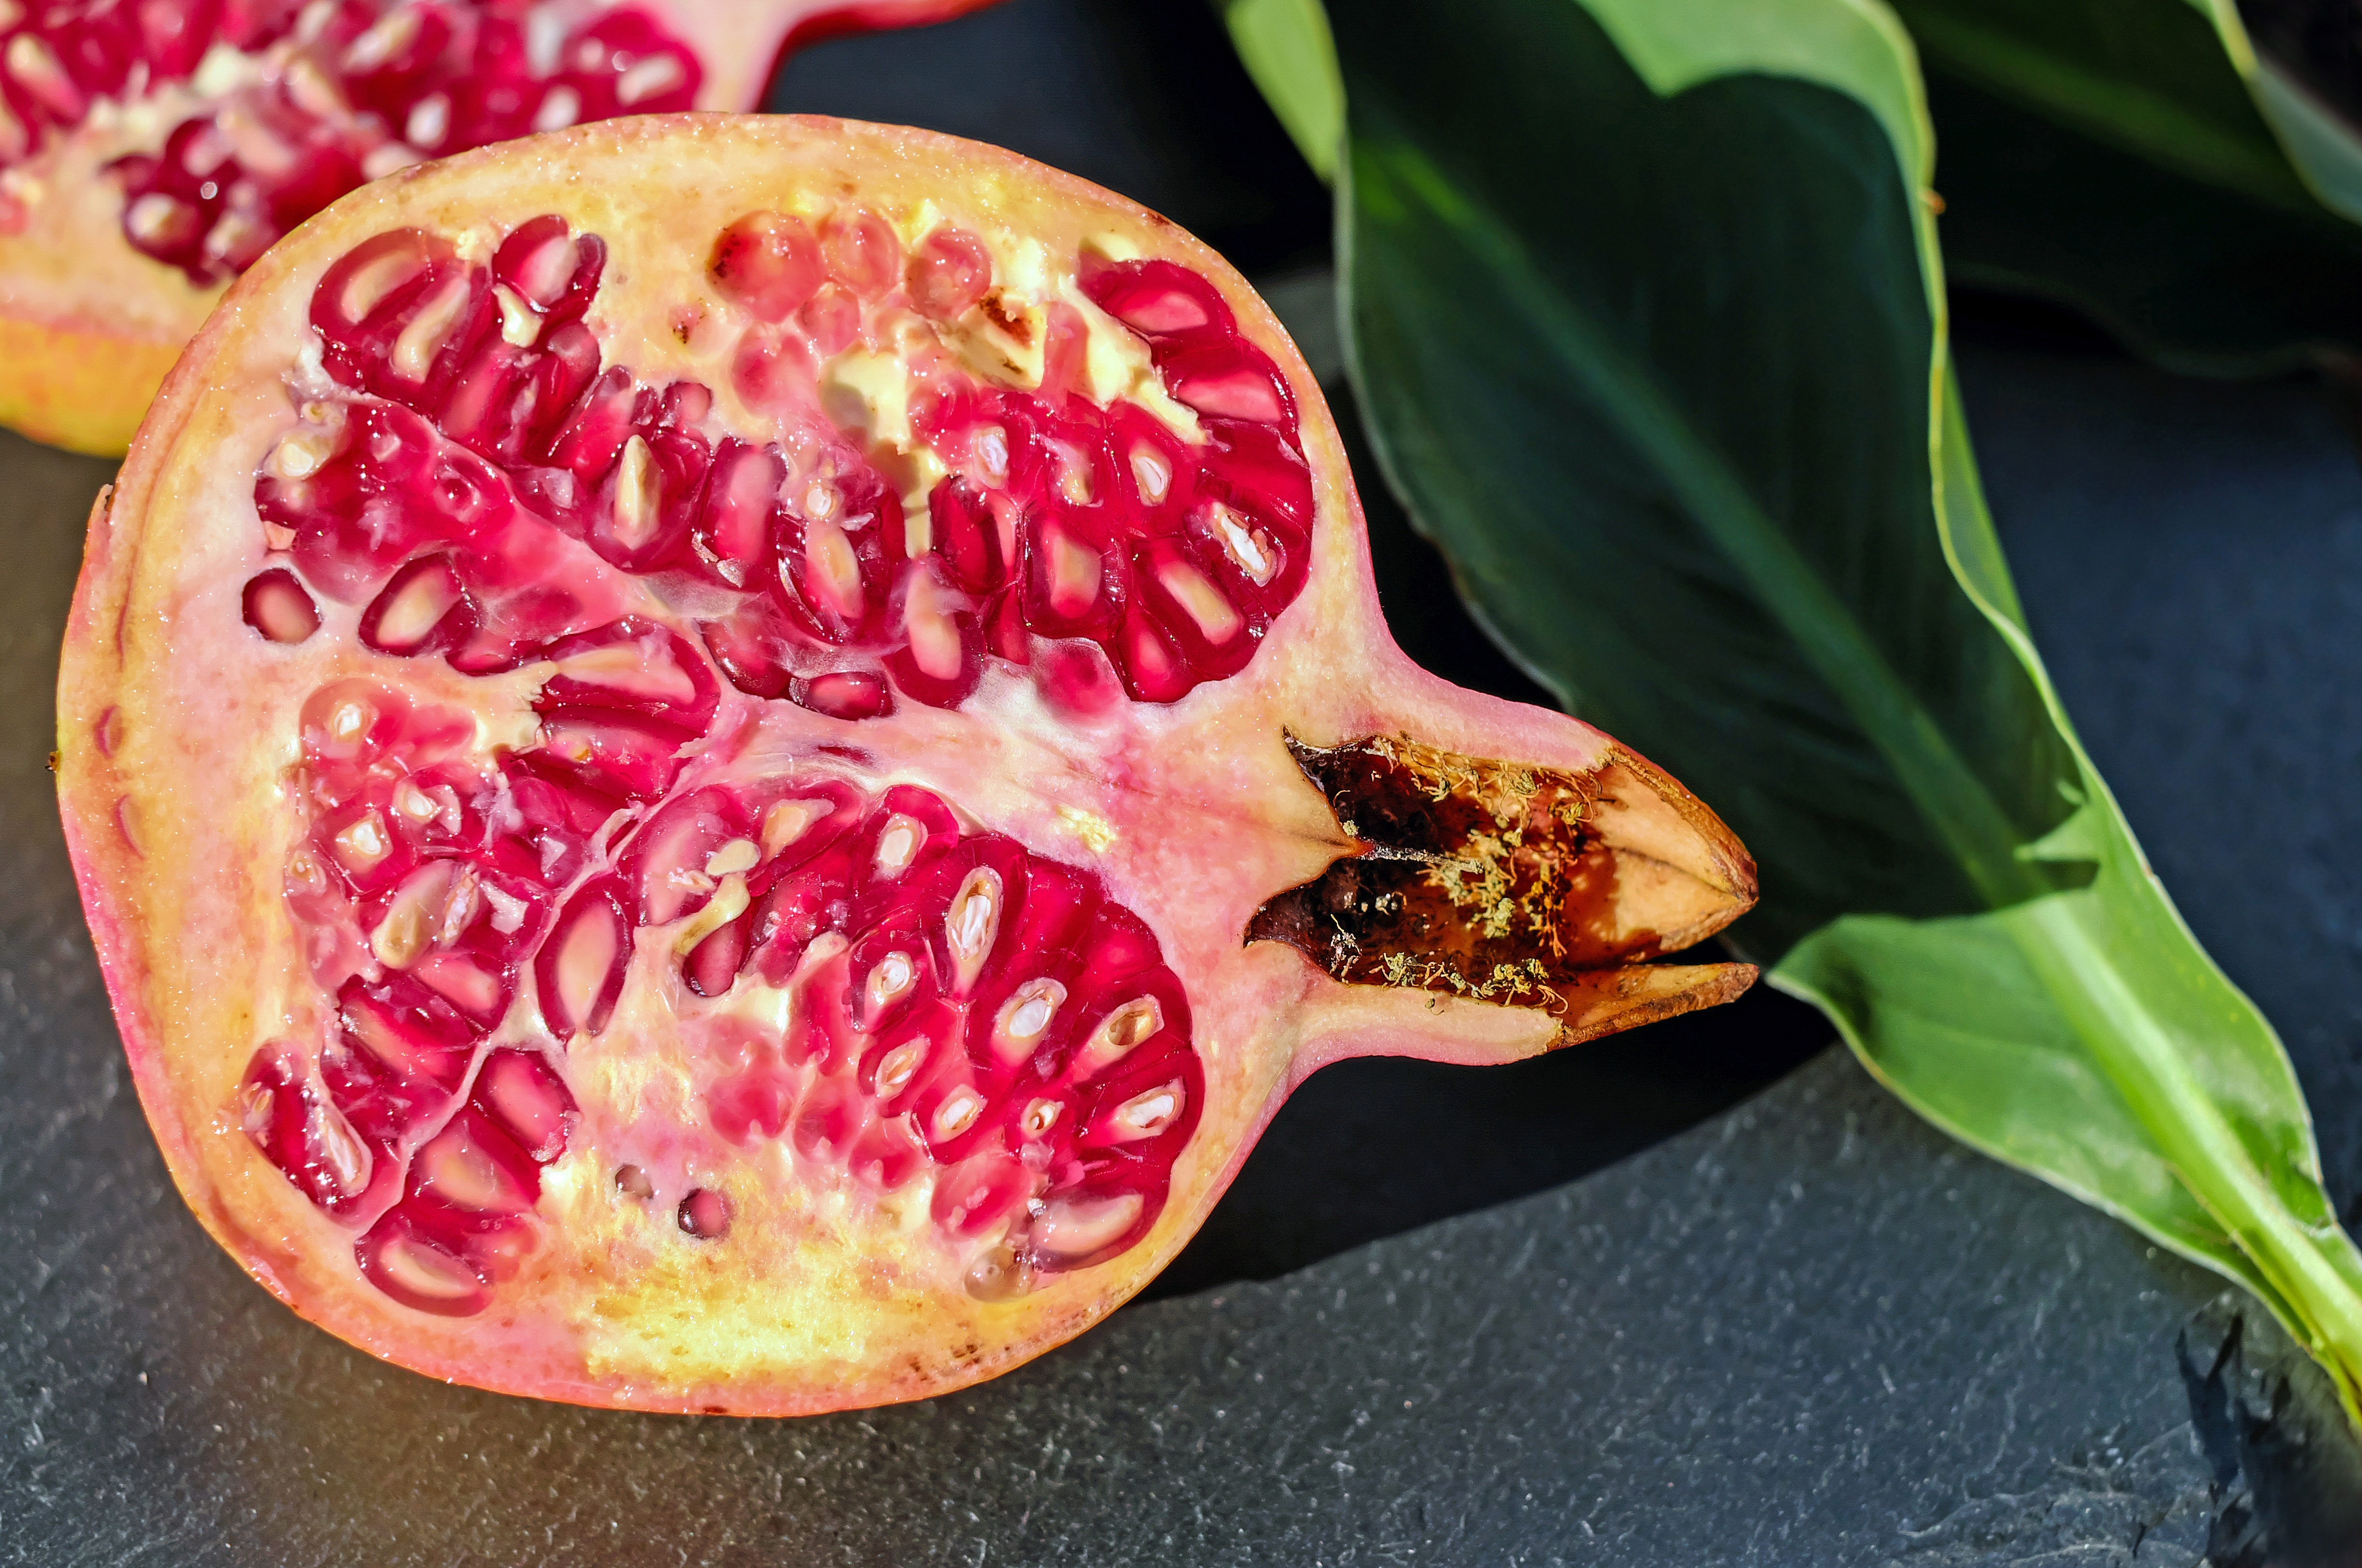 92372 download wallpaper Food, Berries, Fruit, Slice, Section, Garnet, Pomegranate screensavers and pictures for free